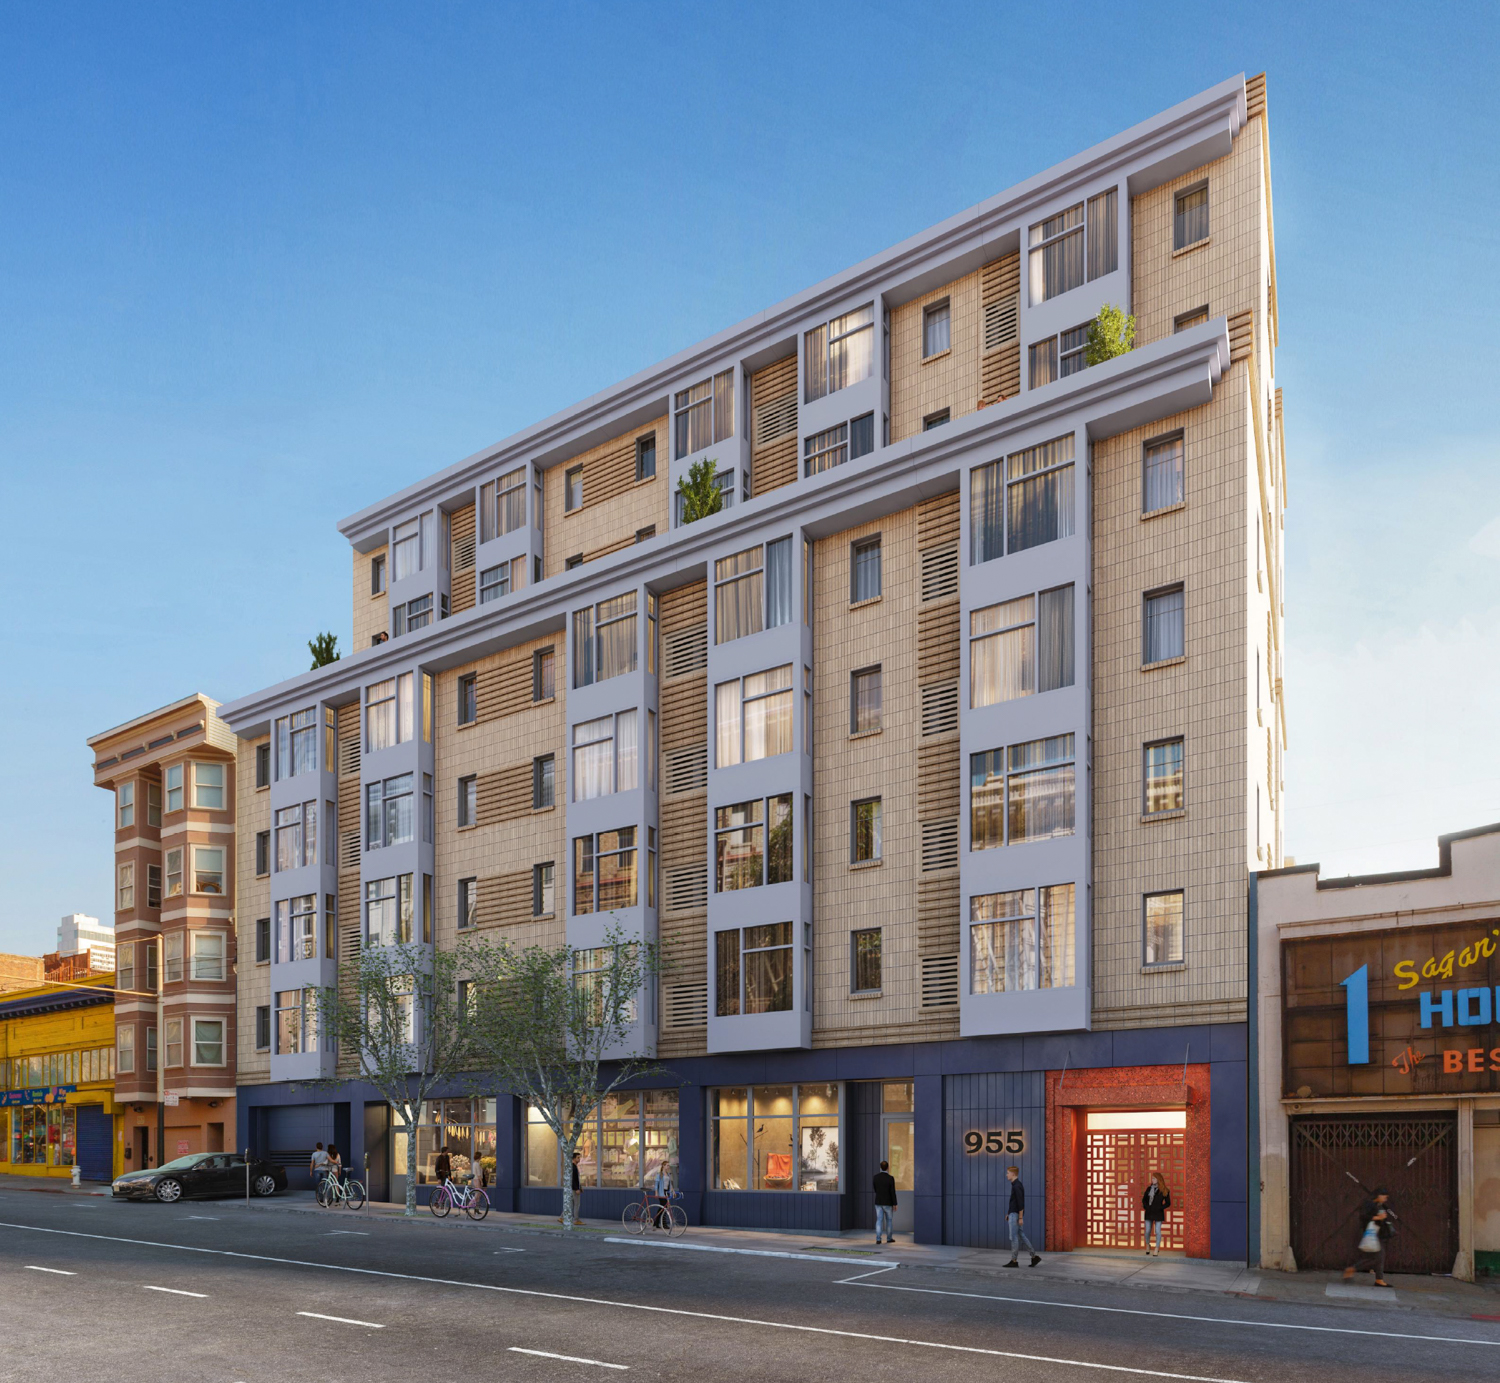 955 Post Street from Street View, rendering by Transparent House with Page & Turnbull